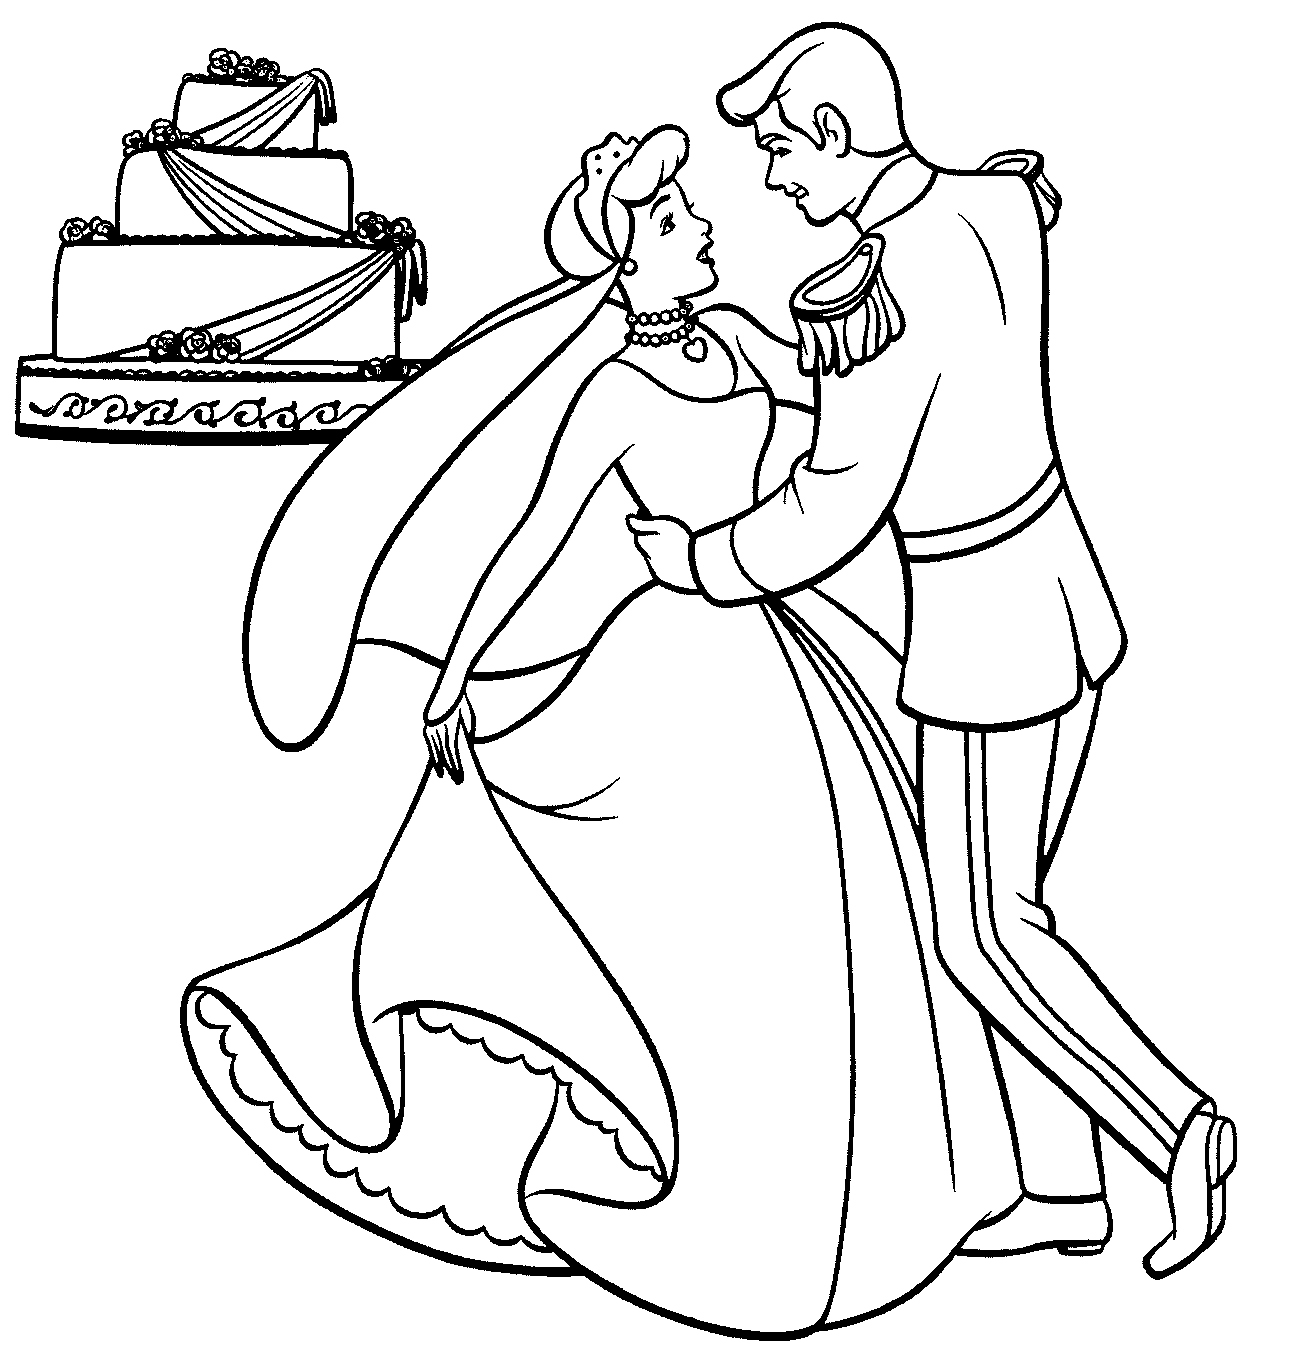 Co co coloring sheets free for kids - Co Co Coloring In Disney Princess Princess Bride Coloring Pages Printable Princess Bride Coloring Pages